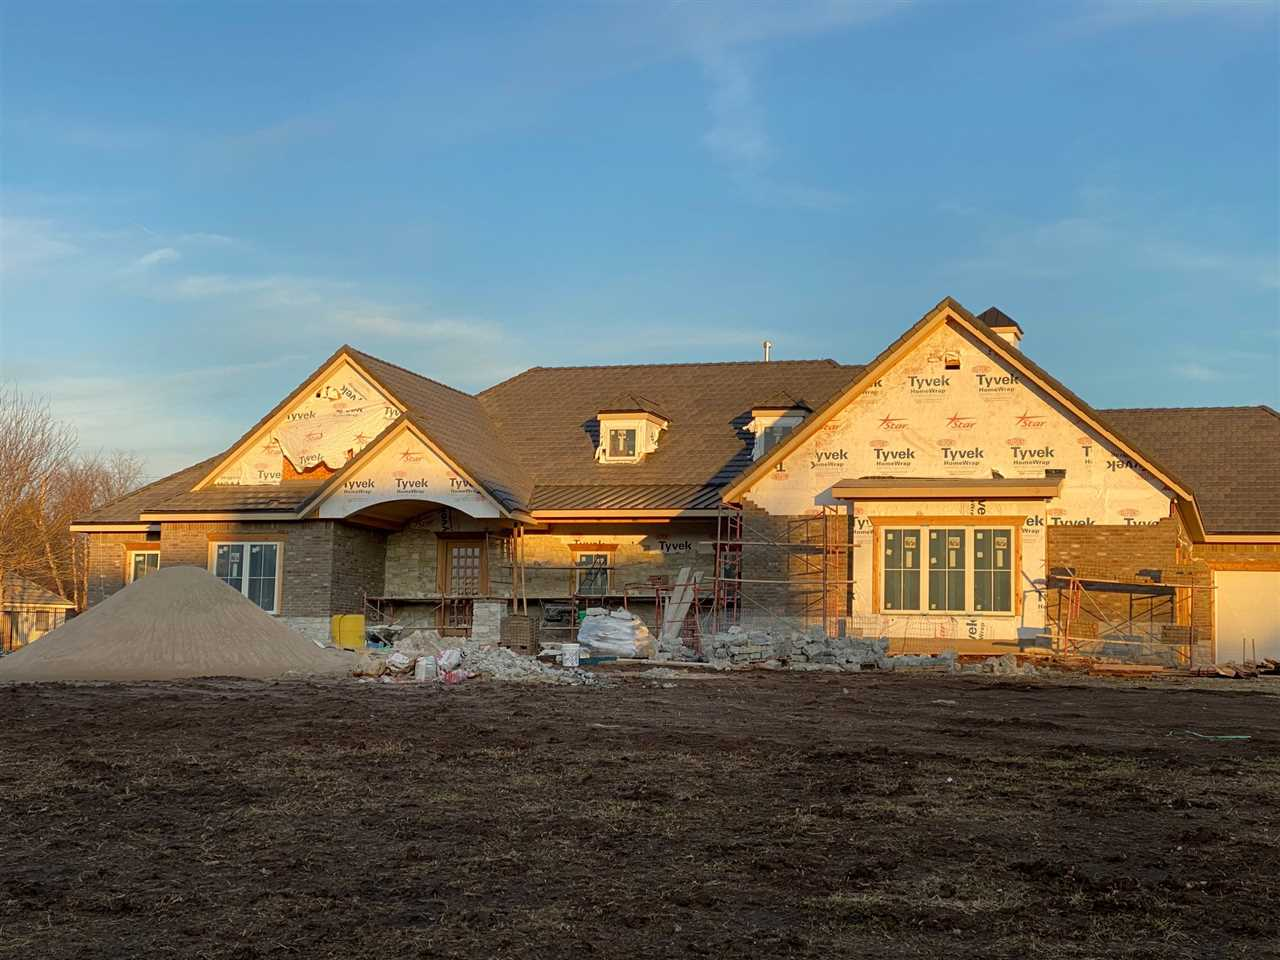 Exquisite New Construction Estate Home by Craig Sharp Homes, Inc. with completion date of April 2020